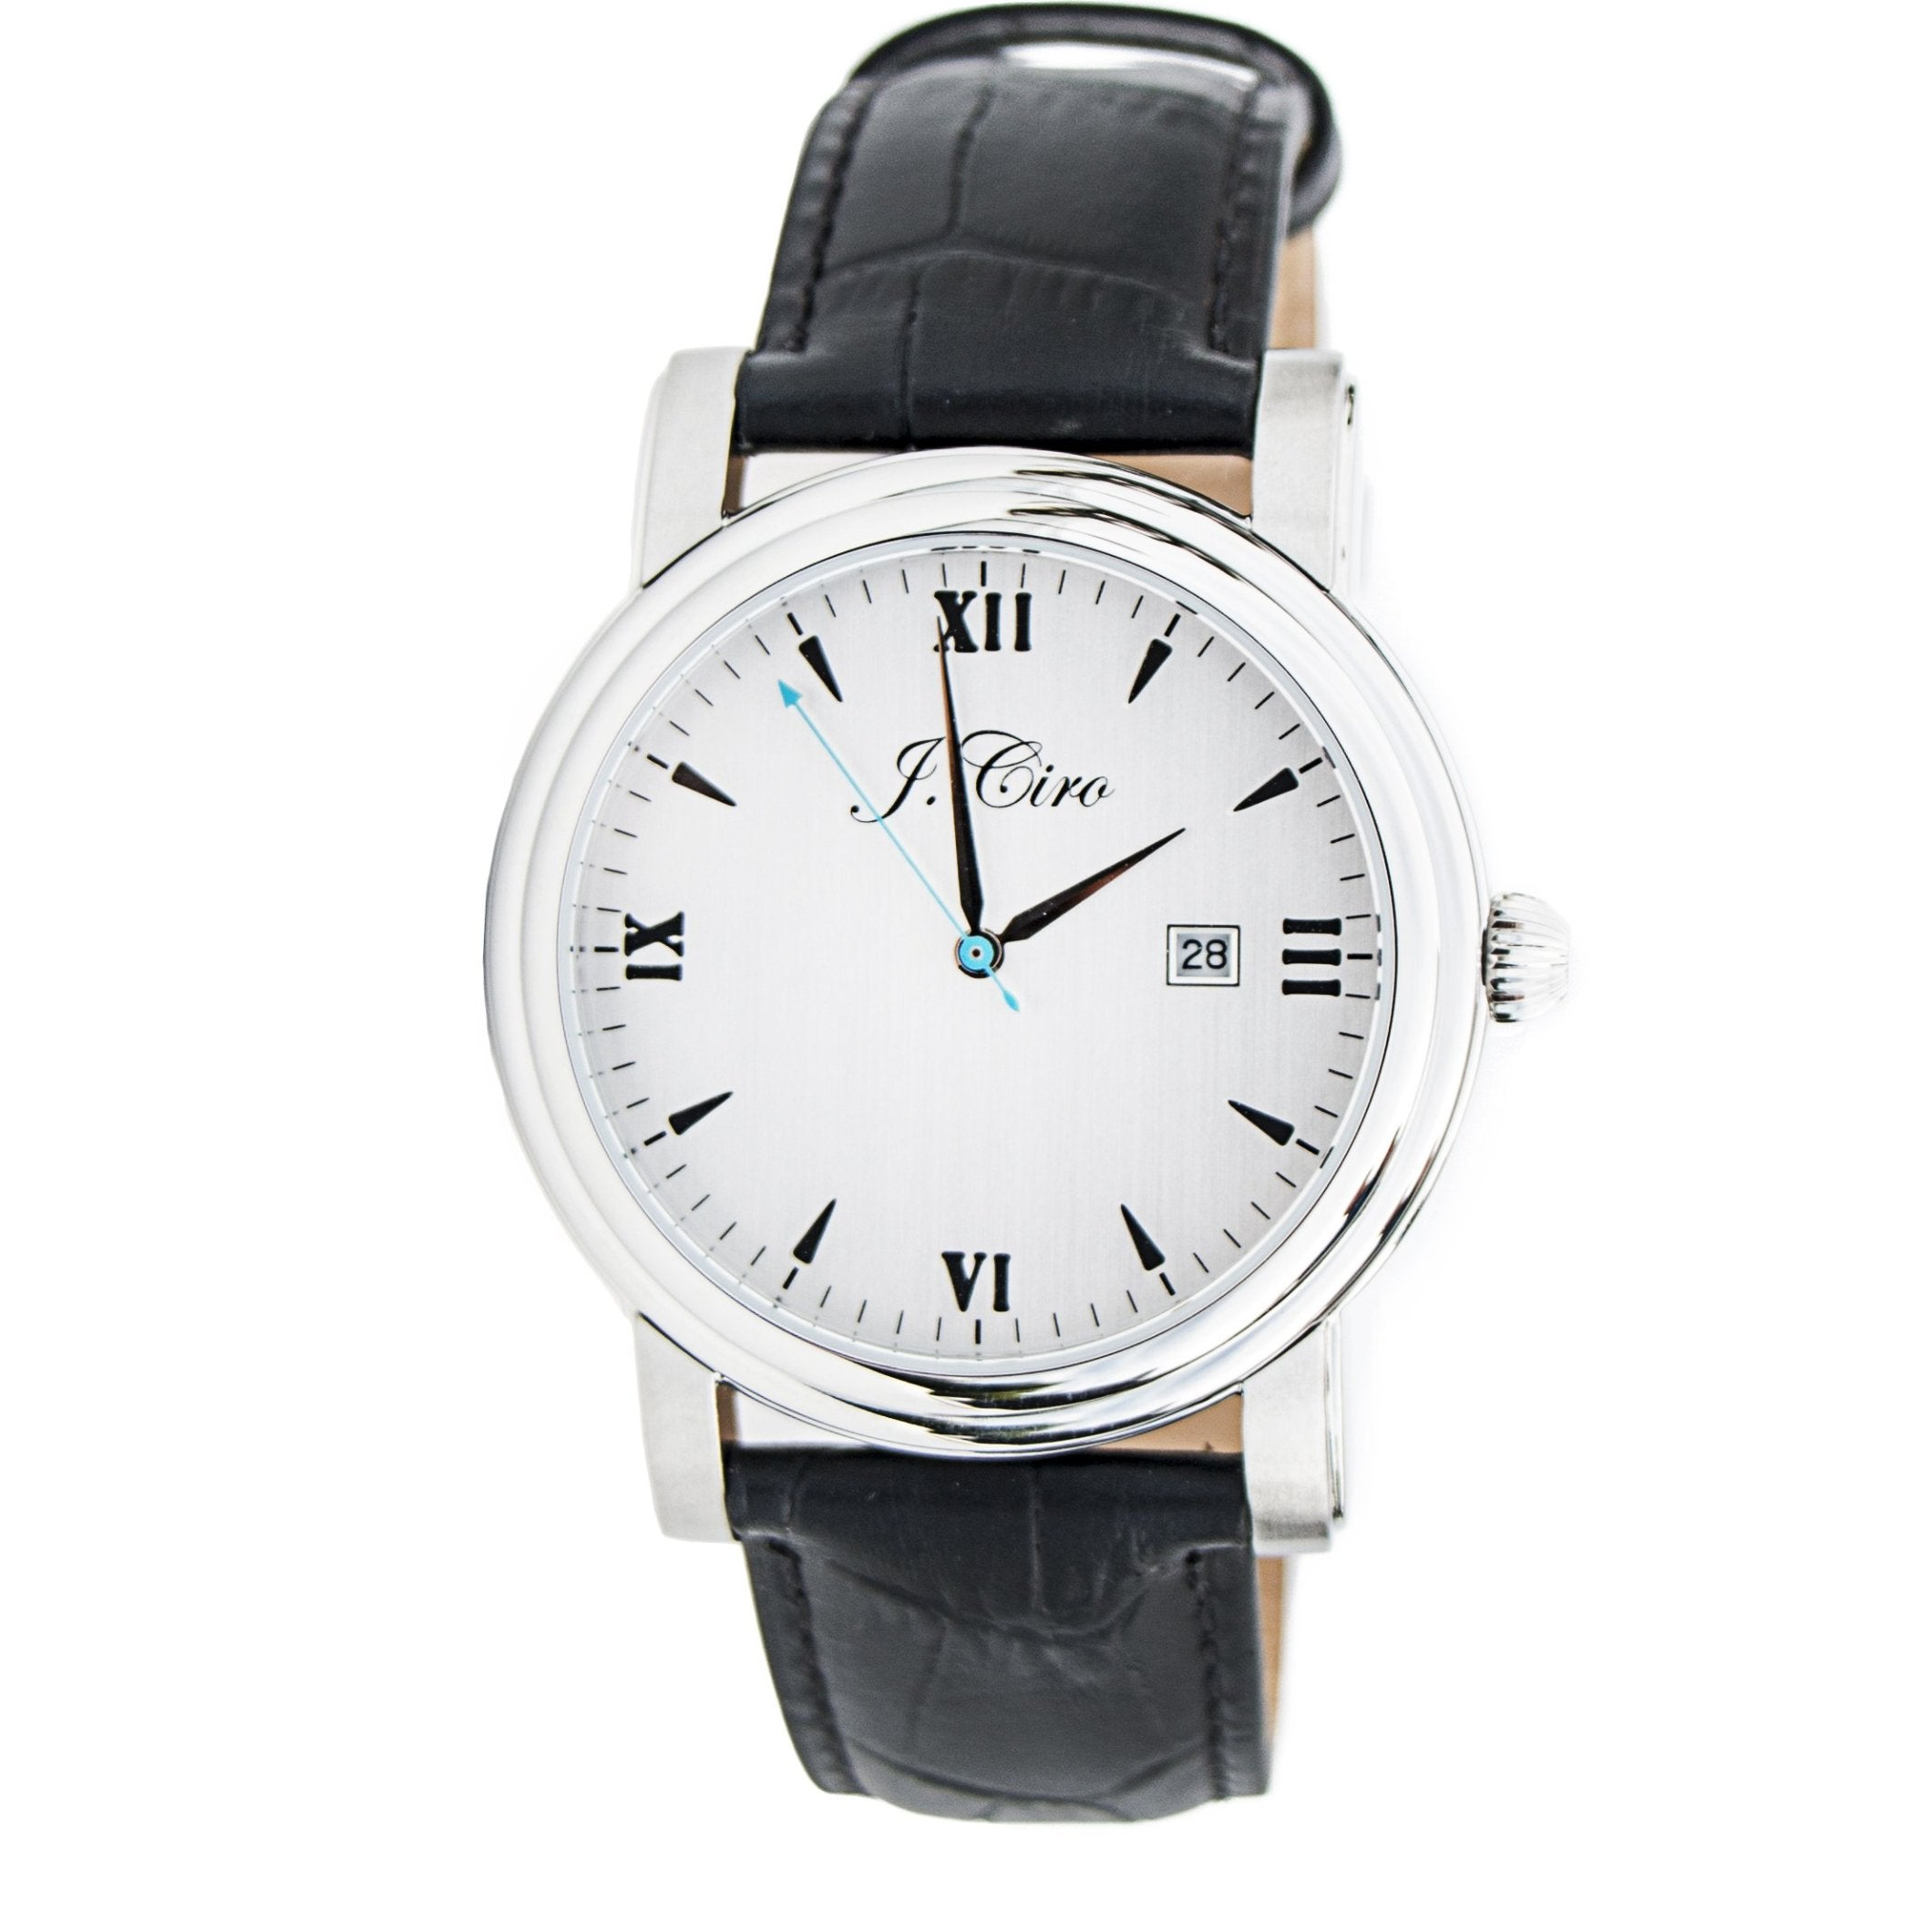 J.Ciro Ambassador Steel White Dress Watch